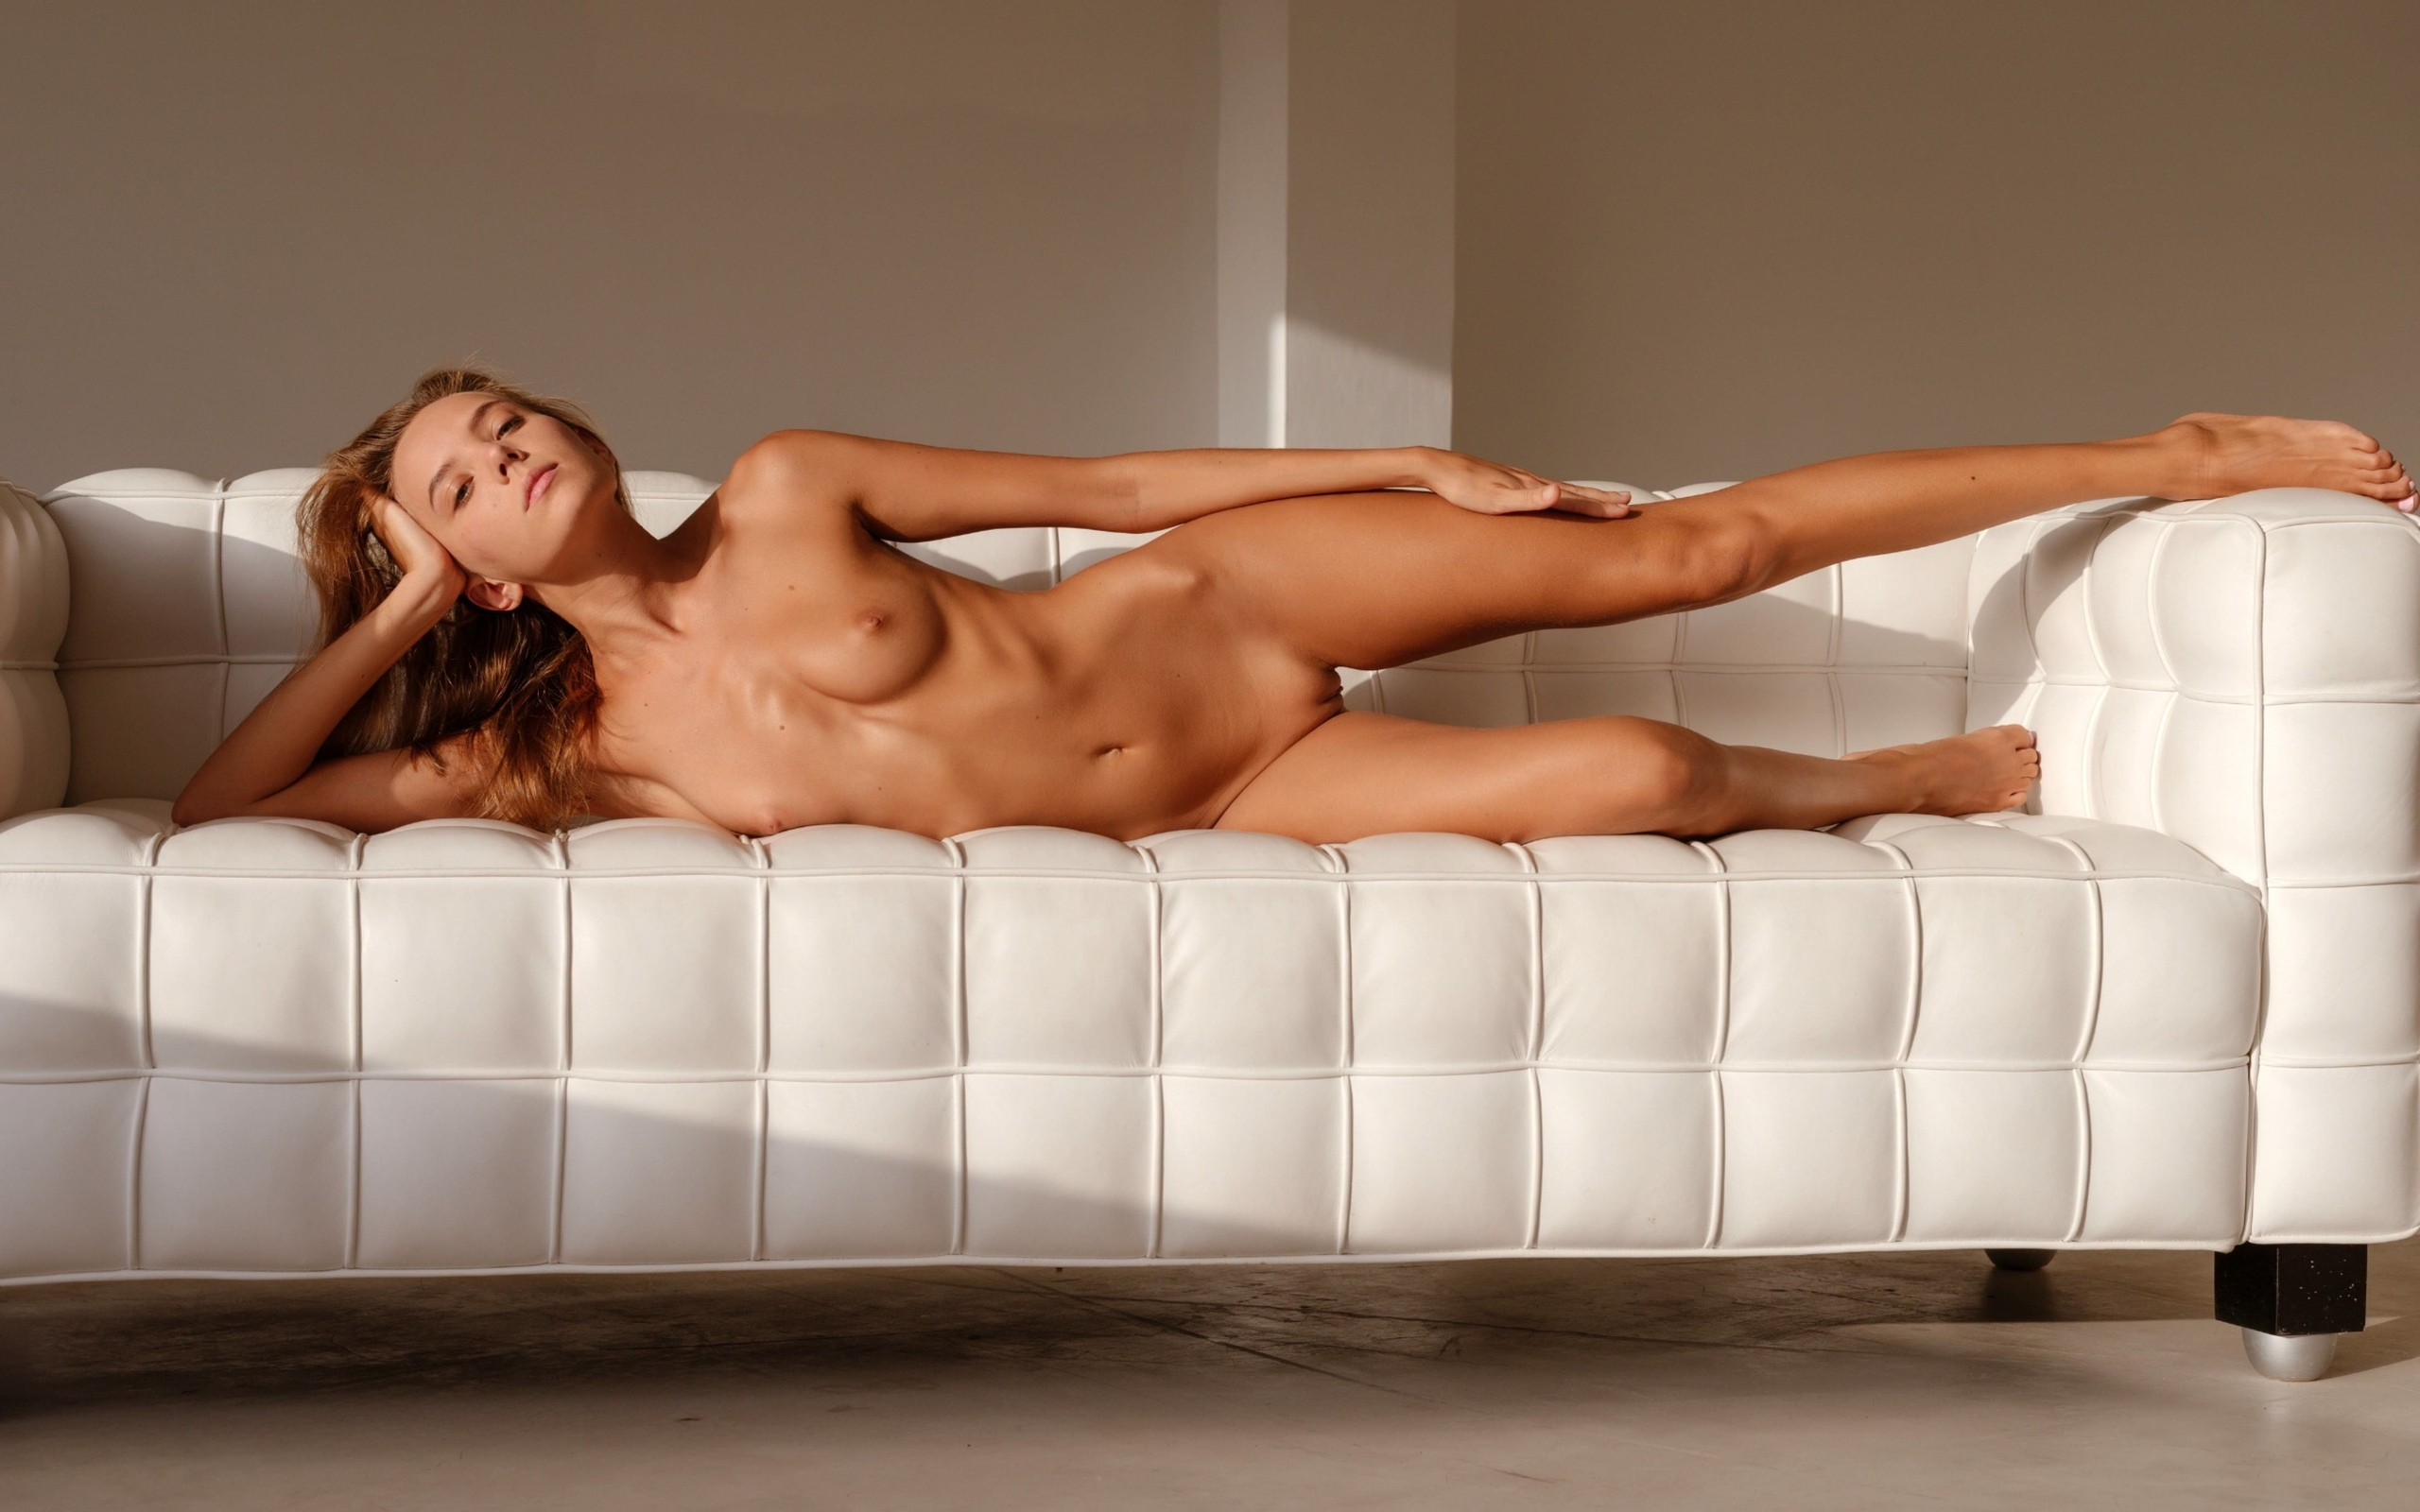 couch-jillian-michaels-naked